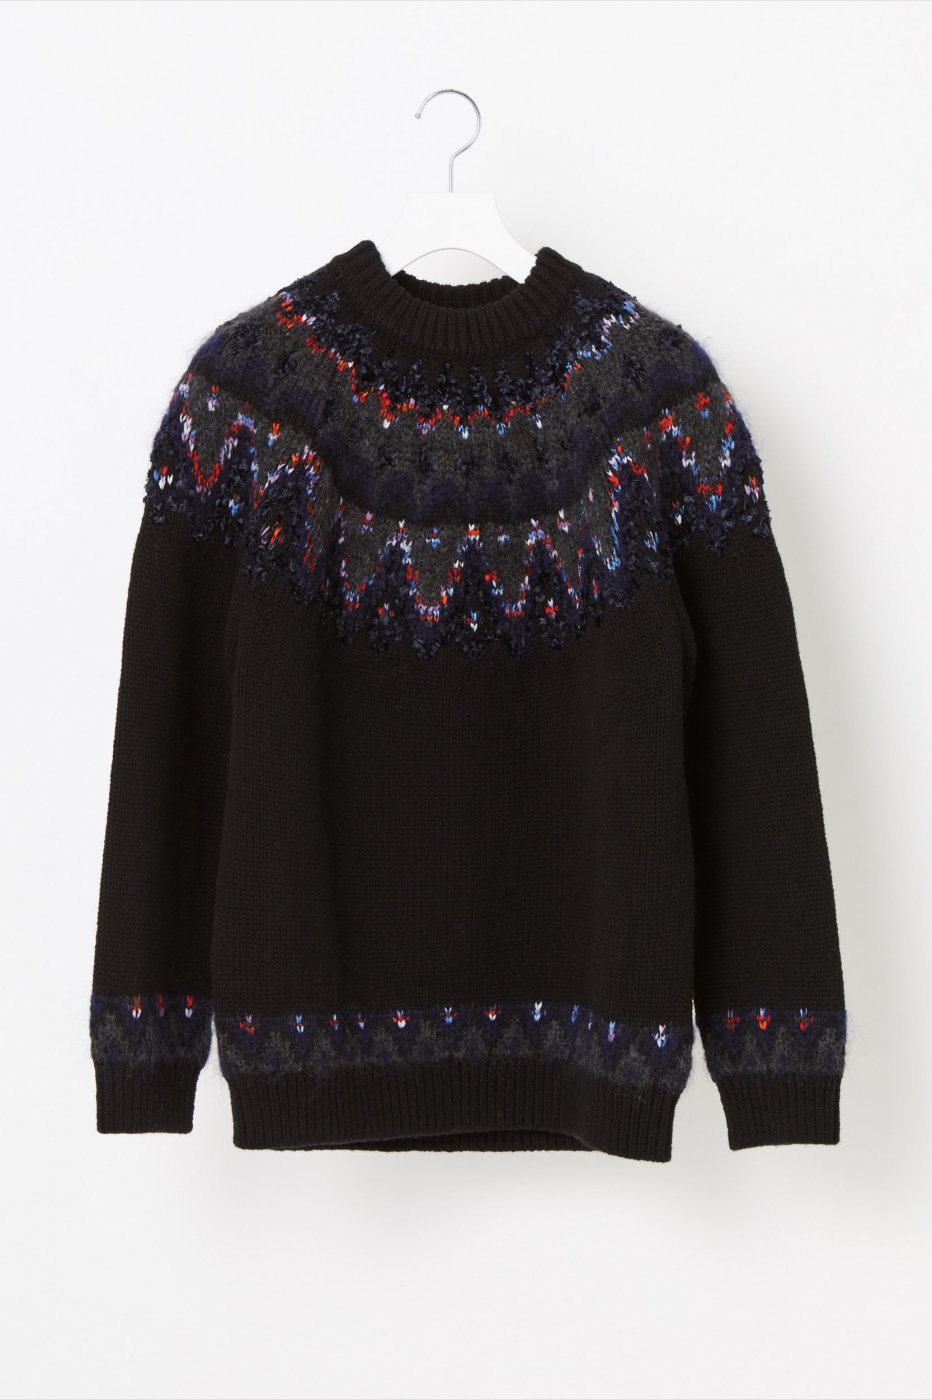 <img class='new_mark_img1' src='https://img.shop-pro.jp/img/new/icons8.gif' style='border:none;display:inline;margin:0px;padding:0px;width:auto;' />COOHEM コーヘン-NORDIC KNIT SWEATER-BLACK